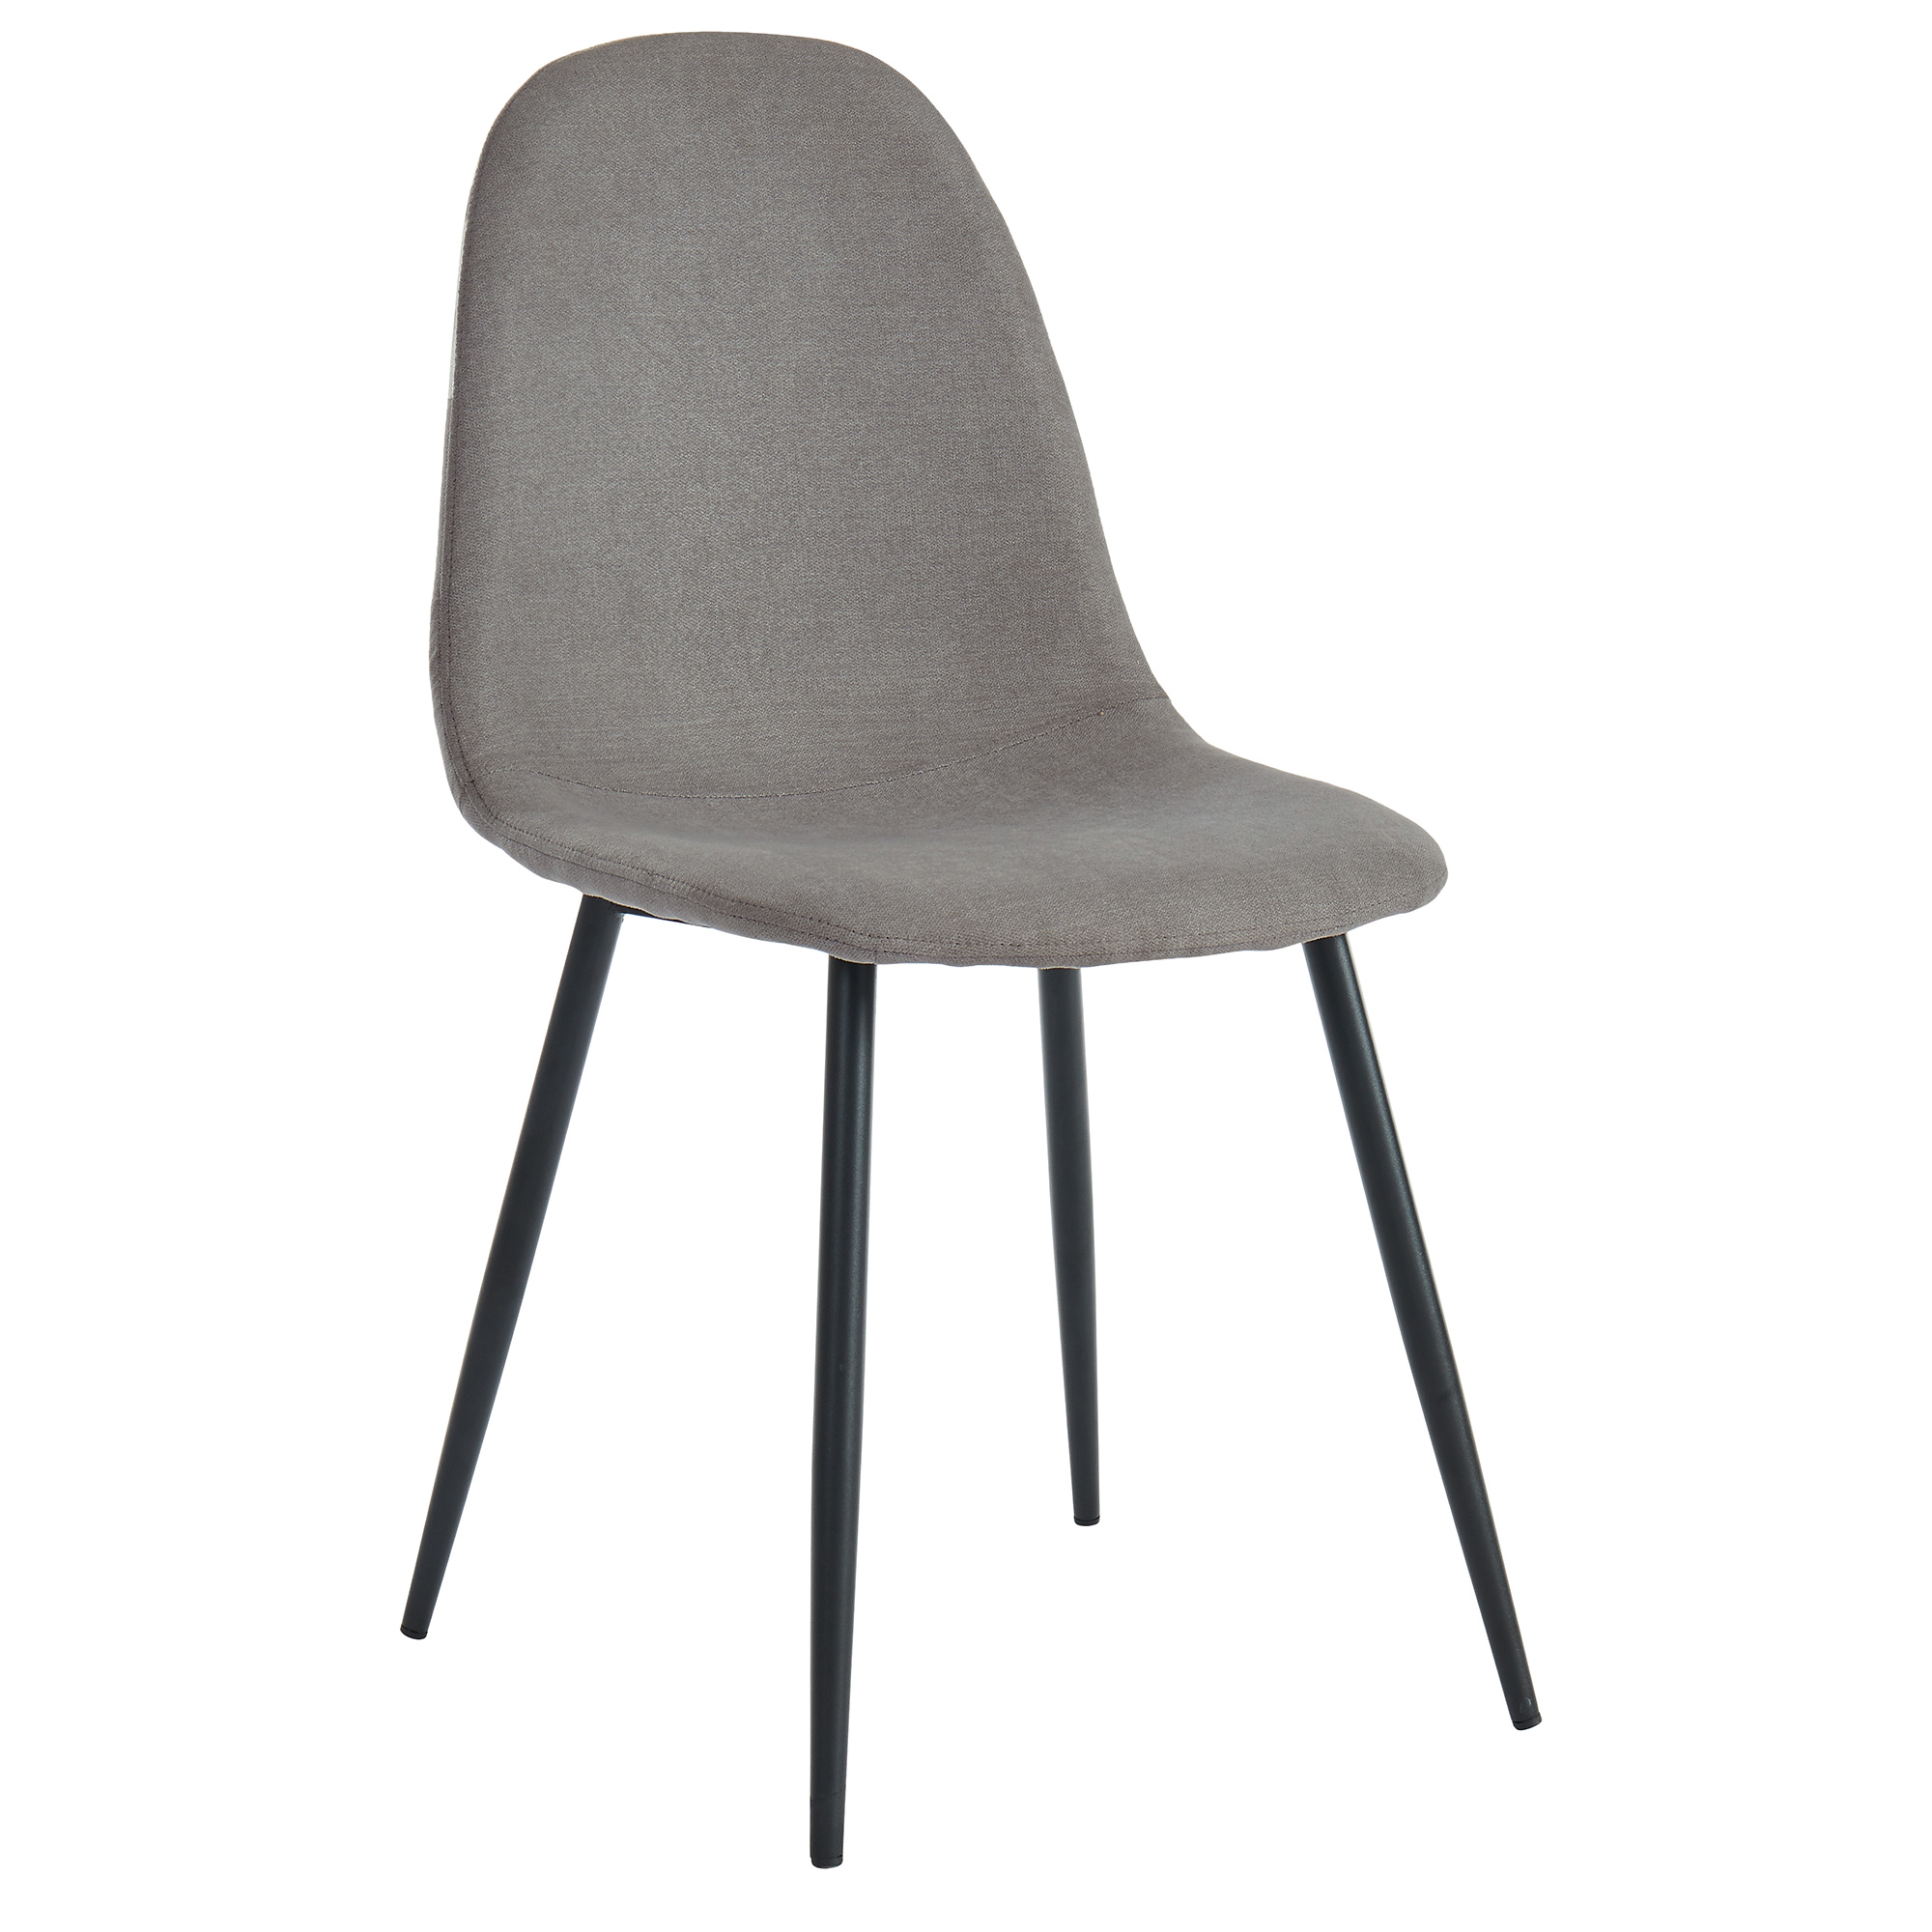 Set of 4 Mid-Century Fabric & Metal Side Chair in Grey